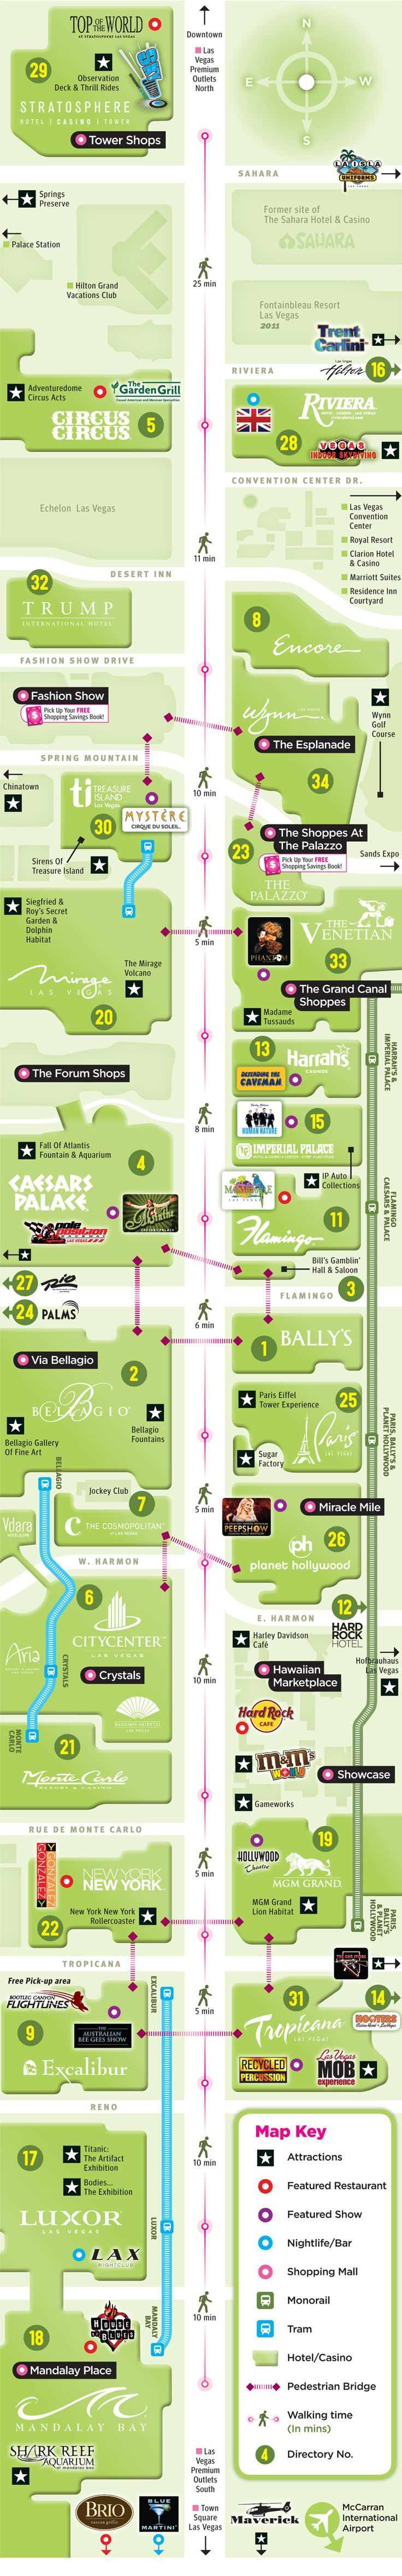 Best Map Of Las Vegas Ideas On Pinterest Las Vegas Map Las - Planet hollywood las vegas map